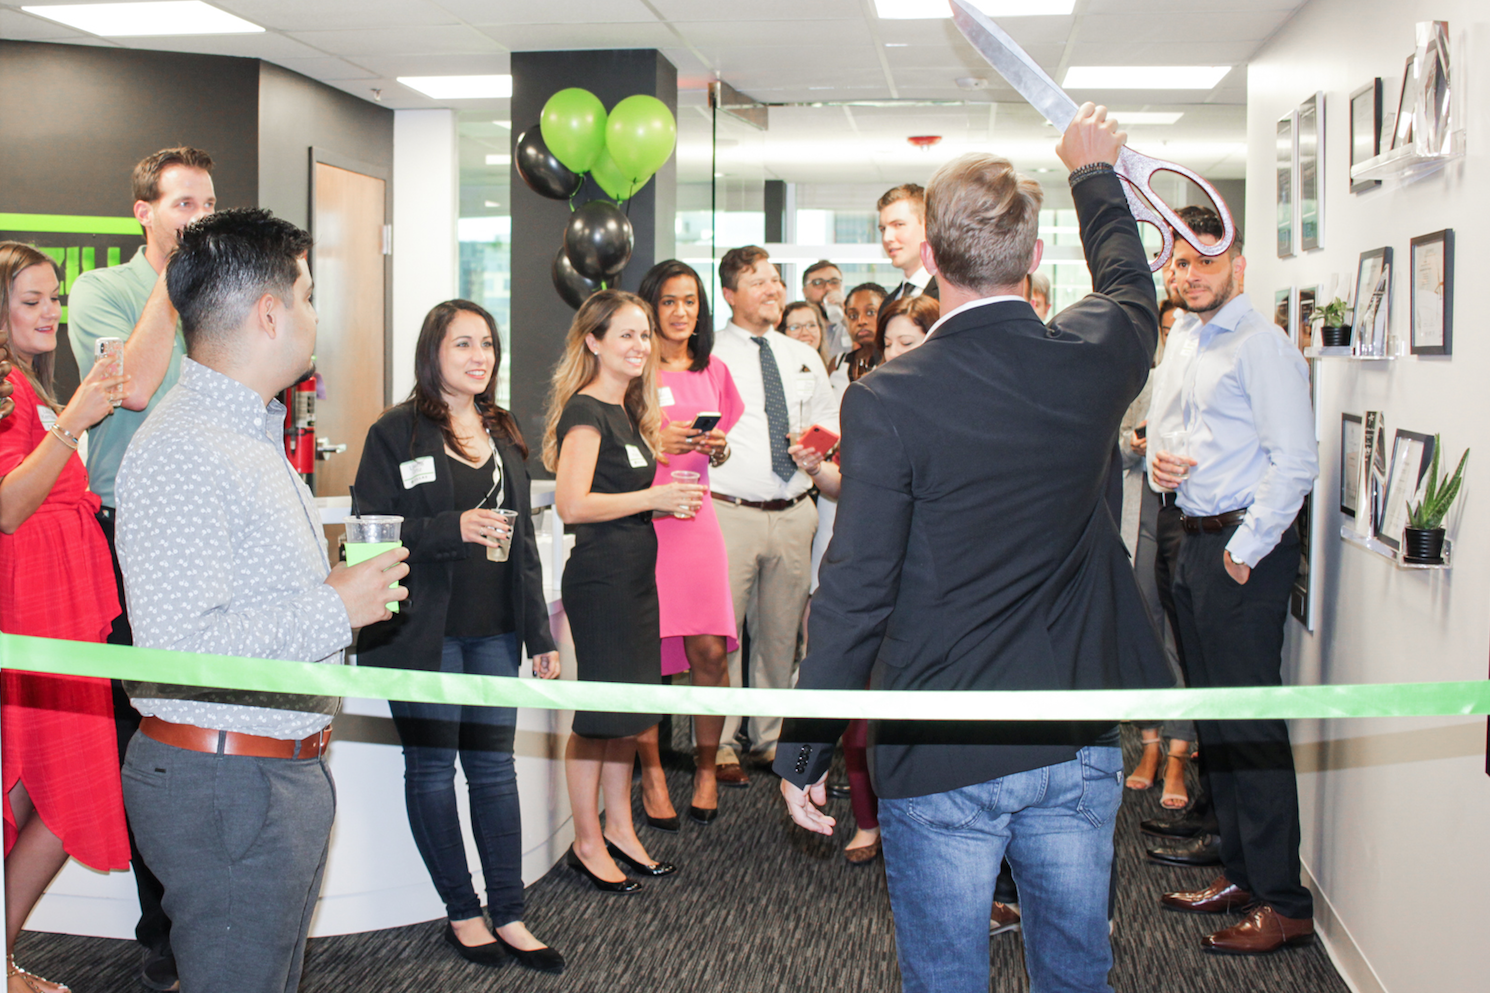 Designzillas' CEO Johnny Hughes Holds Up Giant Scissors for Ribbon-Cutting Ceremony